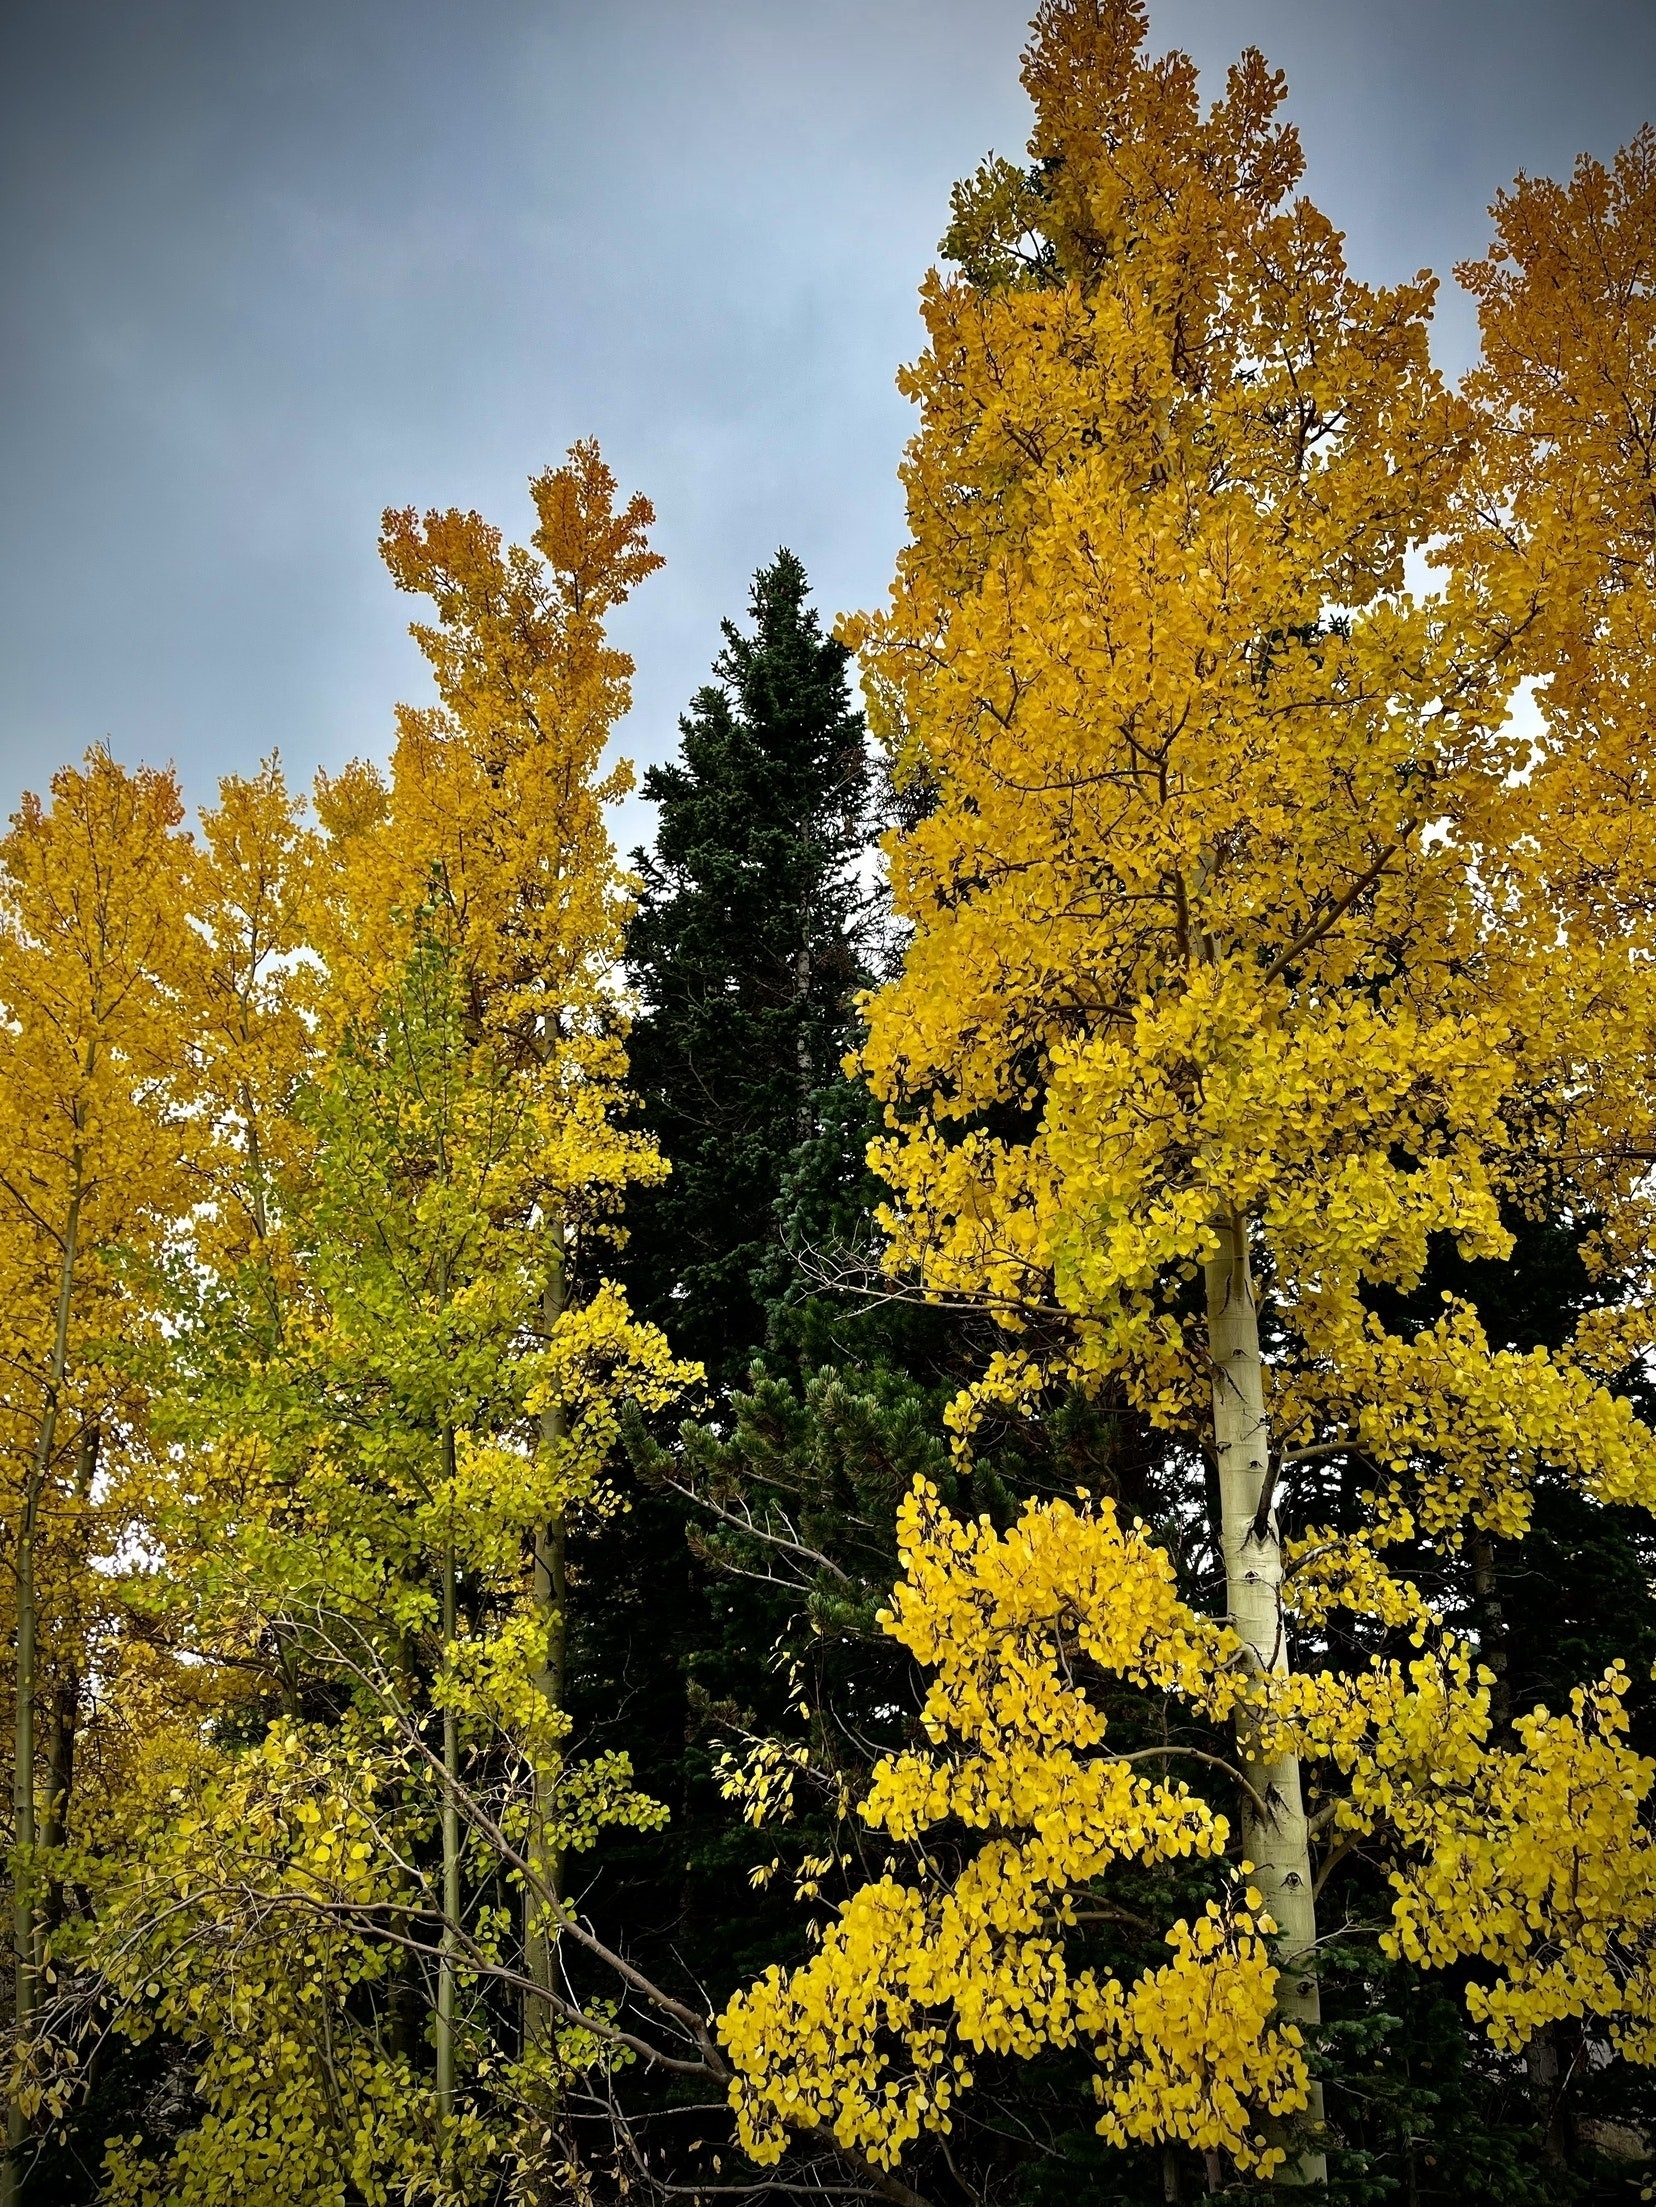 Yellow Aspens and Green Pines against a gray sky.